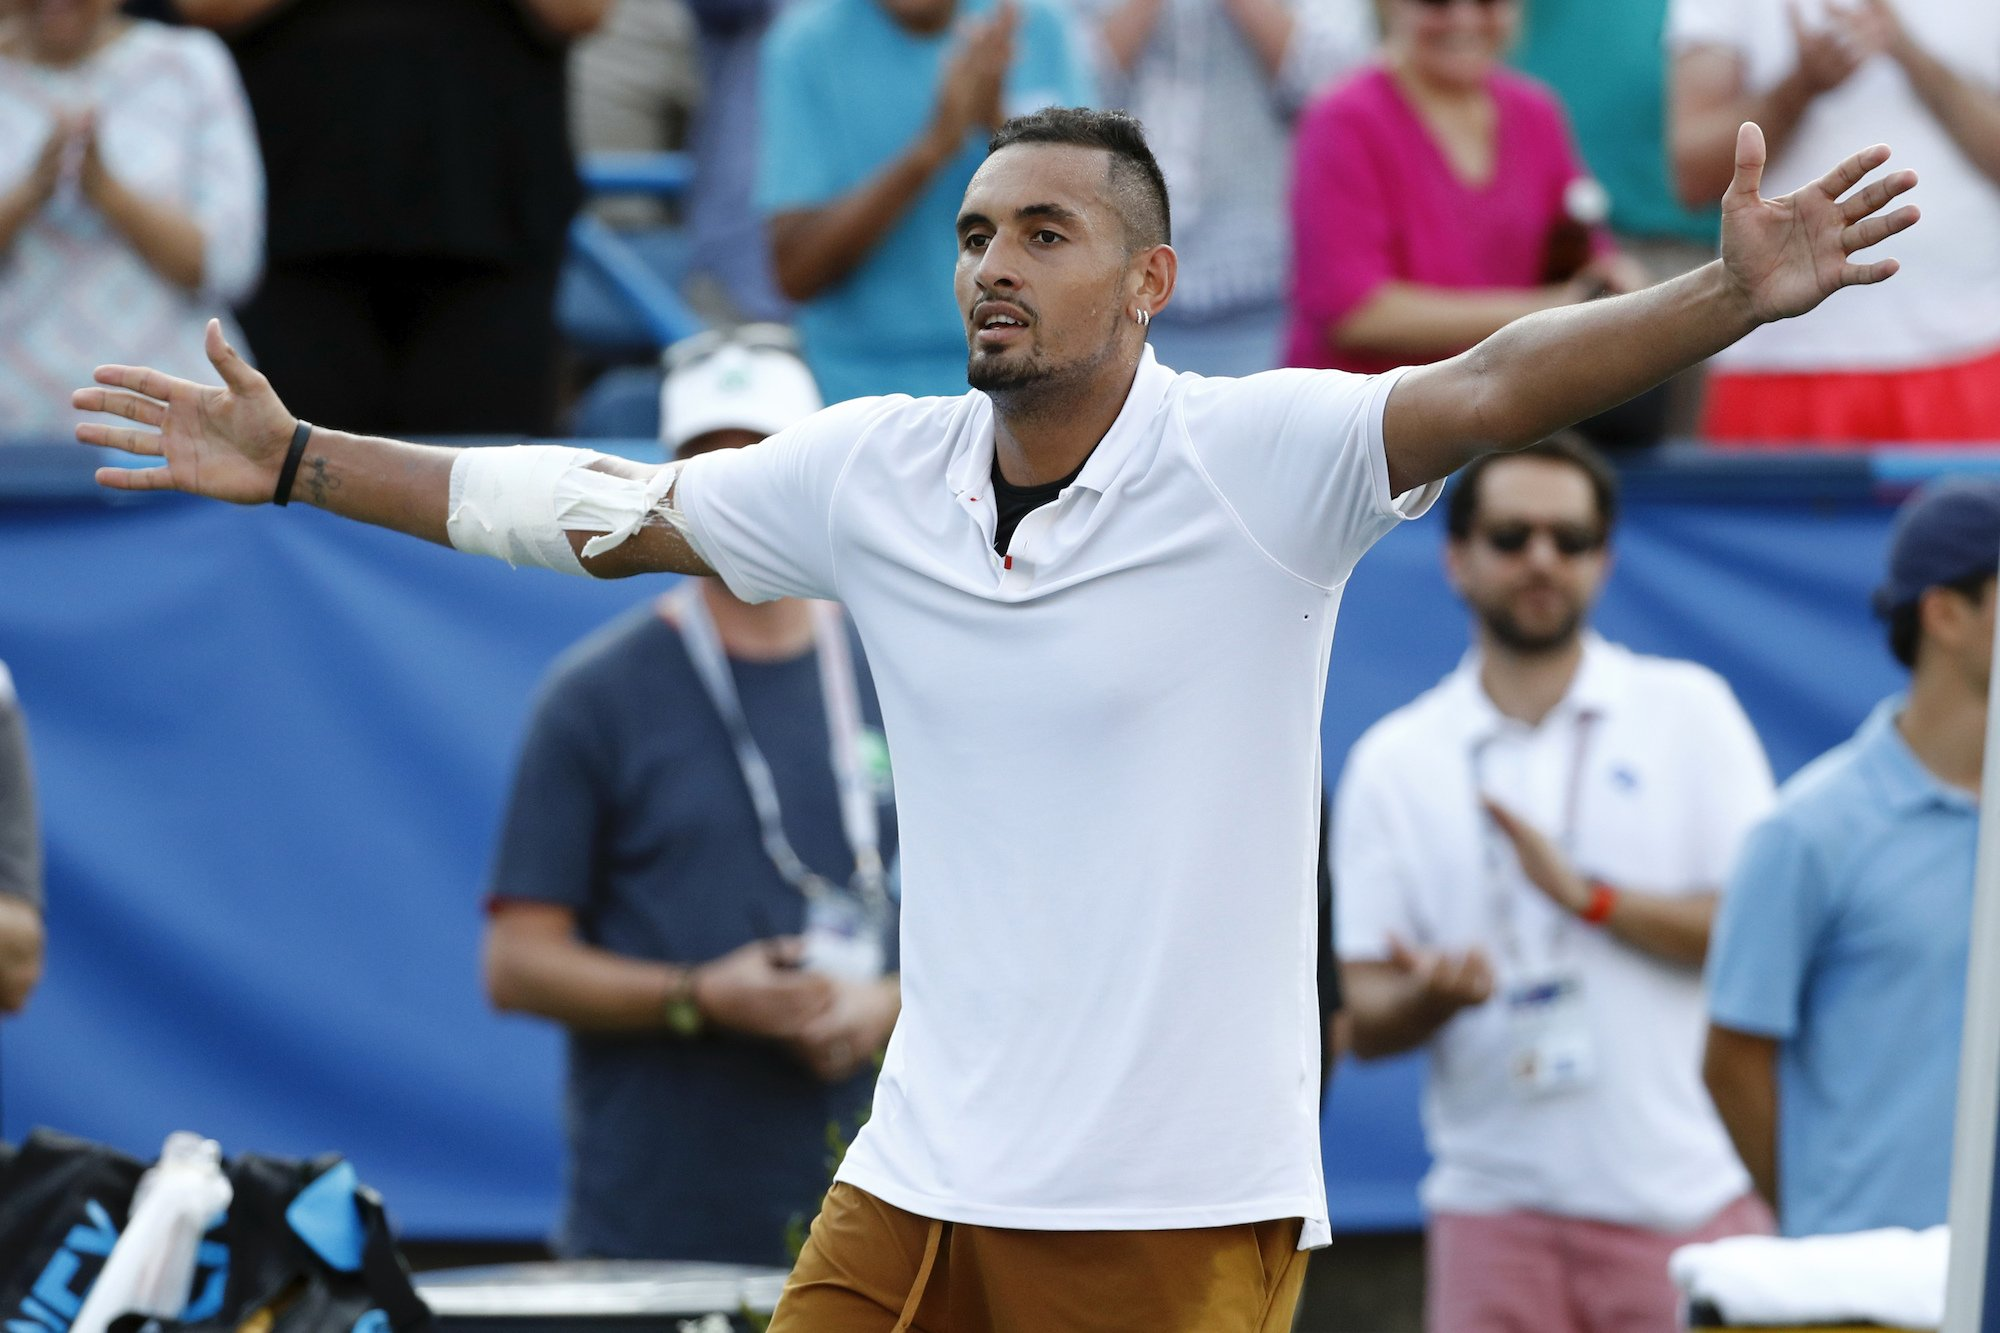 (reuters) Tennis Player Nick Kyrgios Once Again Showed His Compassionate Side On Monday, Pledging To Help Hungry People And Drop Off Food At Doorstep For Those In Need During The Coronavirus Pandemic